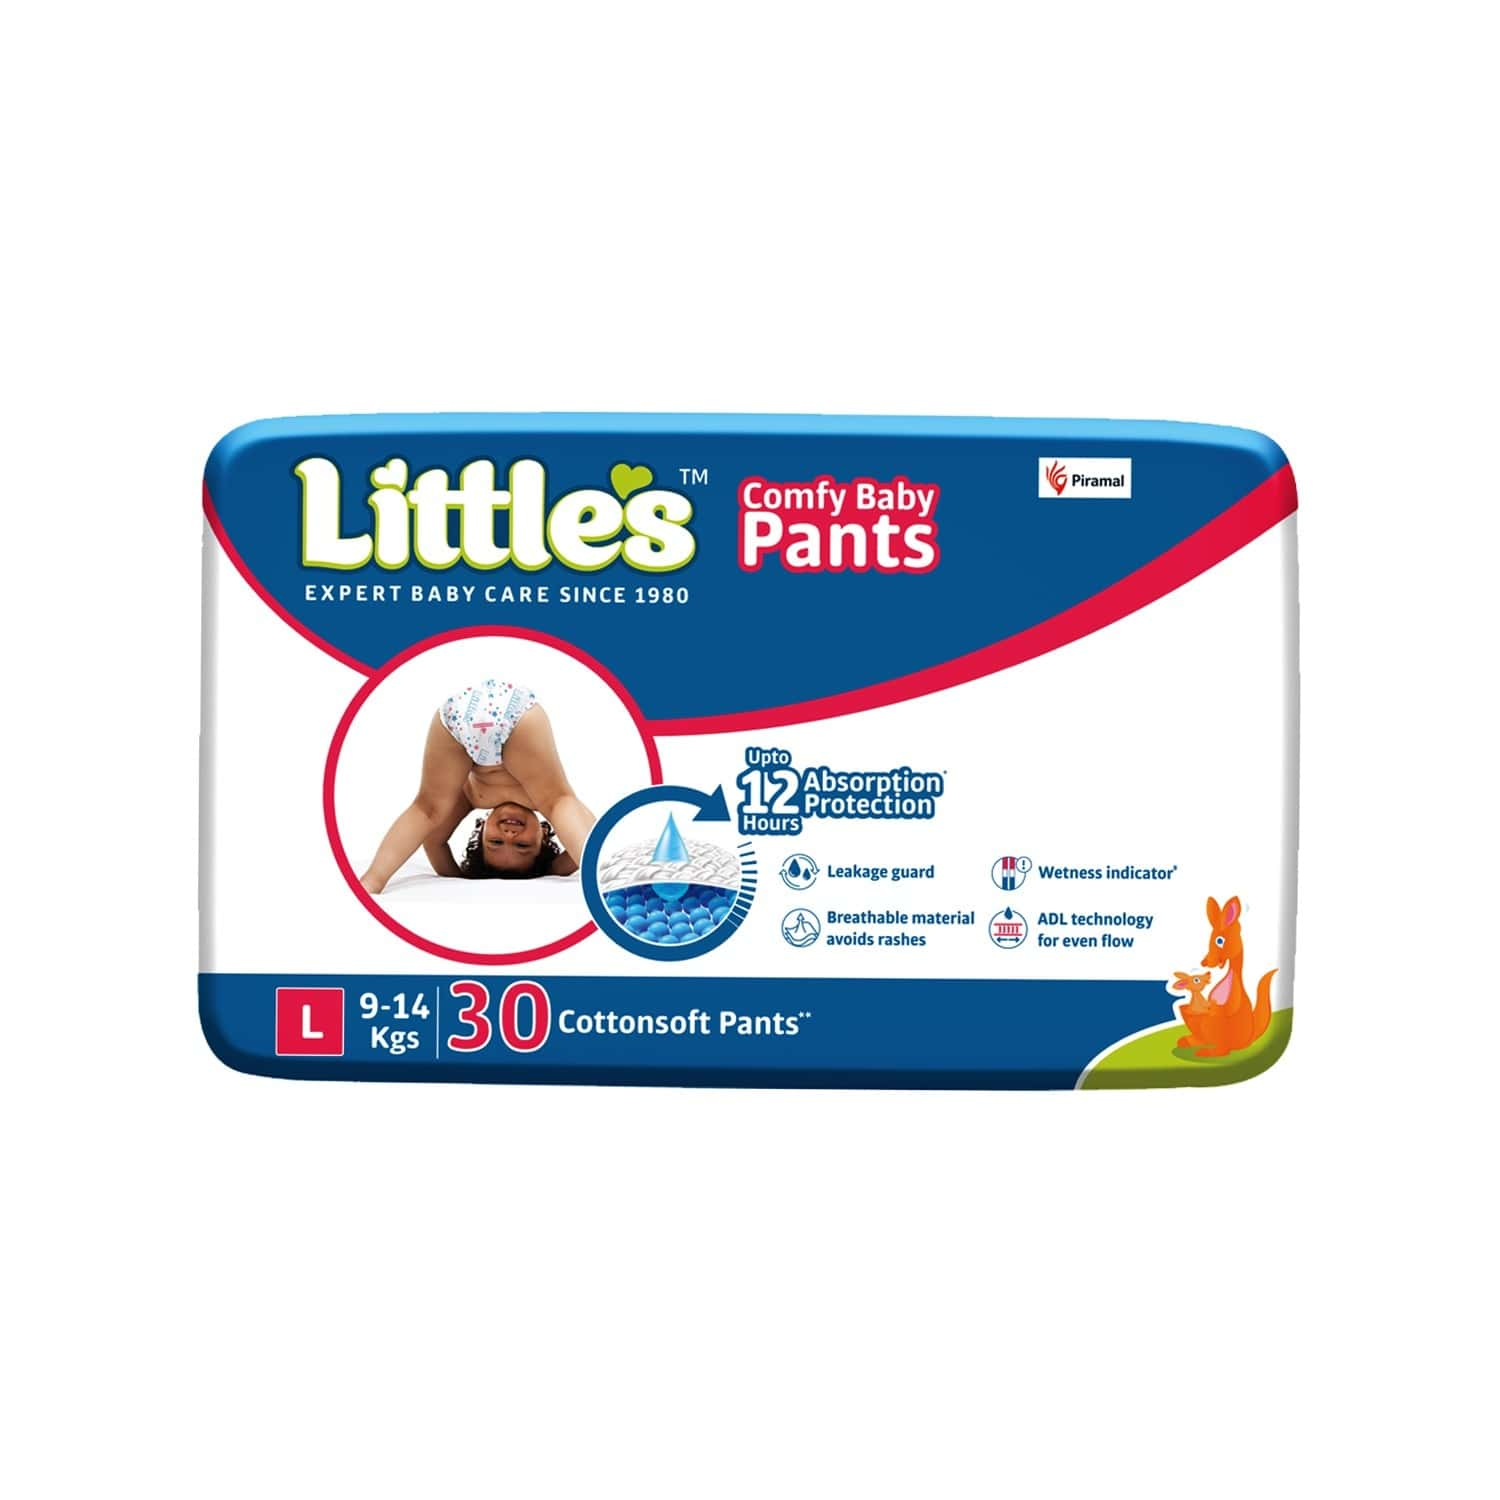 Little's Comfy Baby Pants Diapers With Wetness Indicator And 12 Hours Absorption - Large 30 Pants